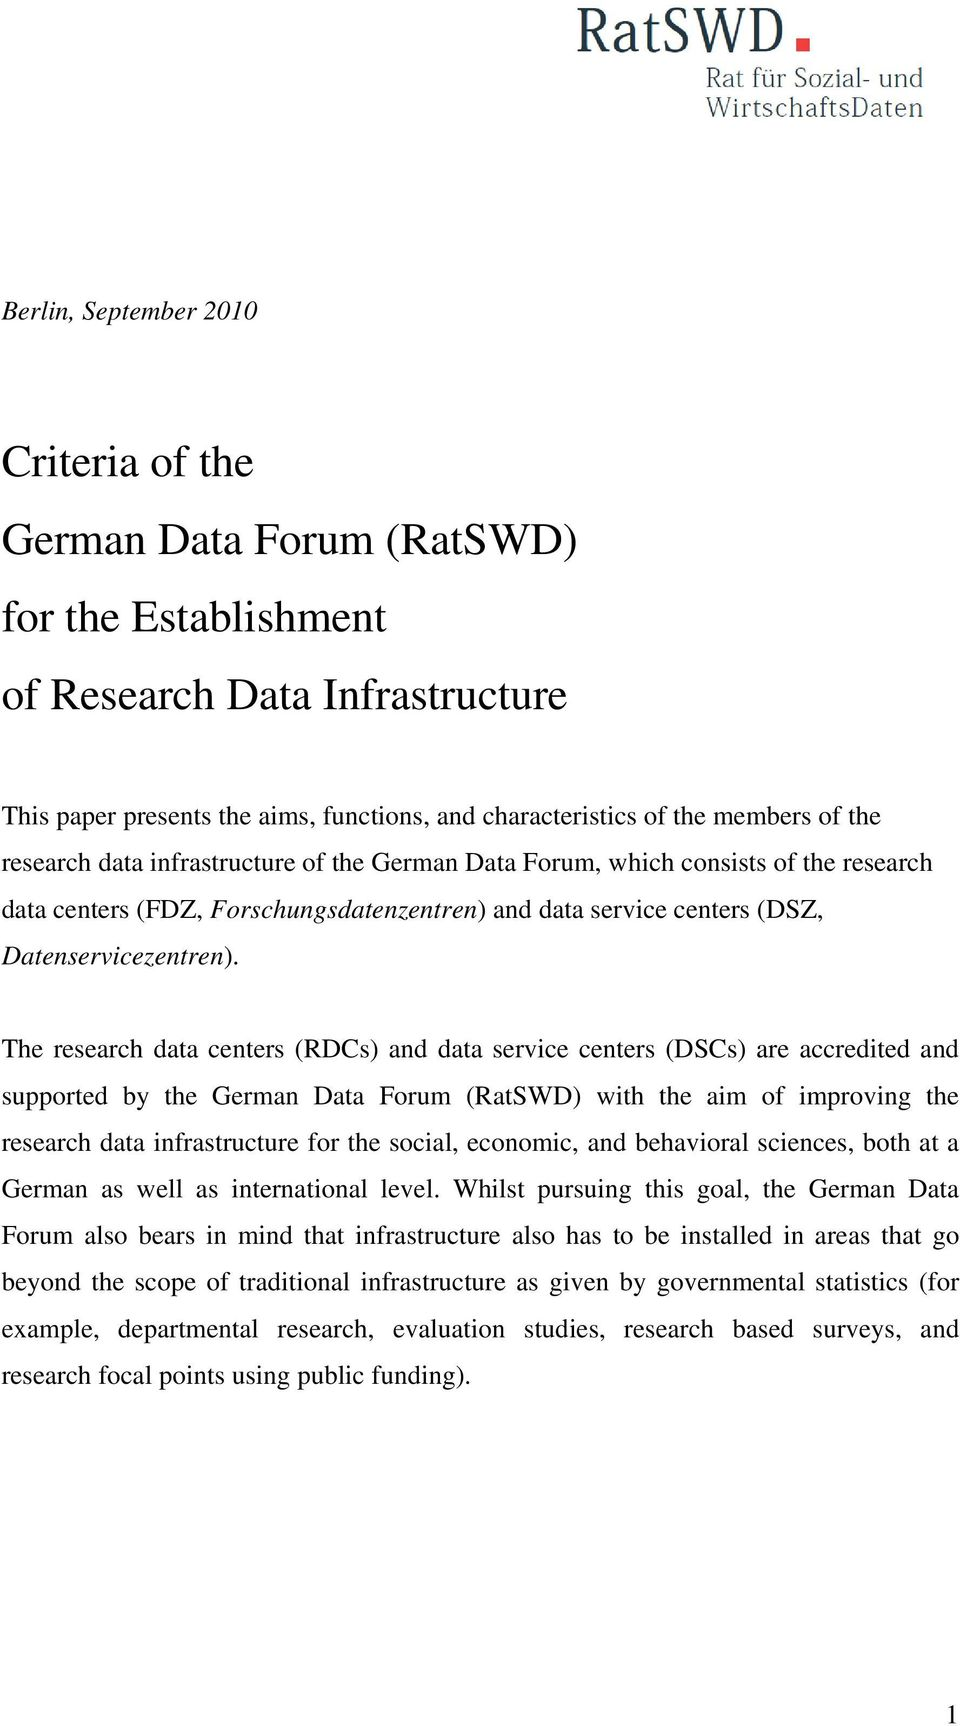 The research data centers (RDCs) and data service centers (DSCs) are accredited and supported by the German Data Forum (RatSWD) with the aim of improving the research data infrastructure for the